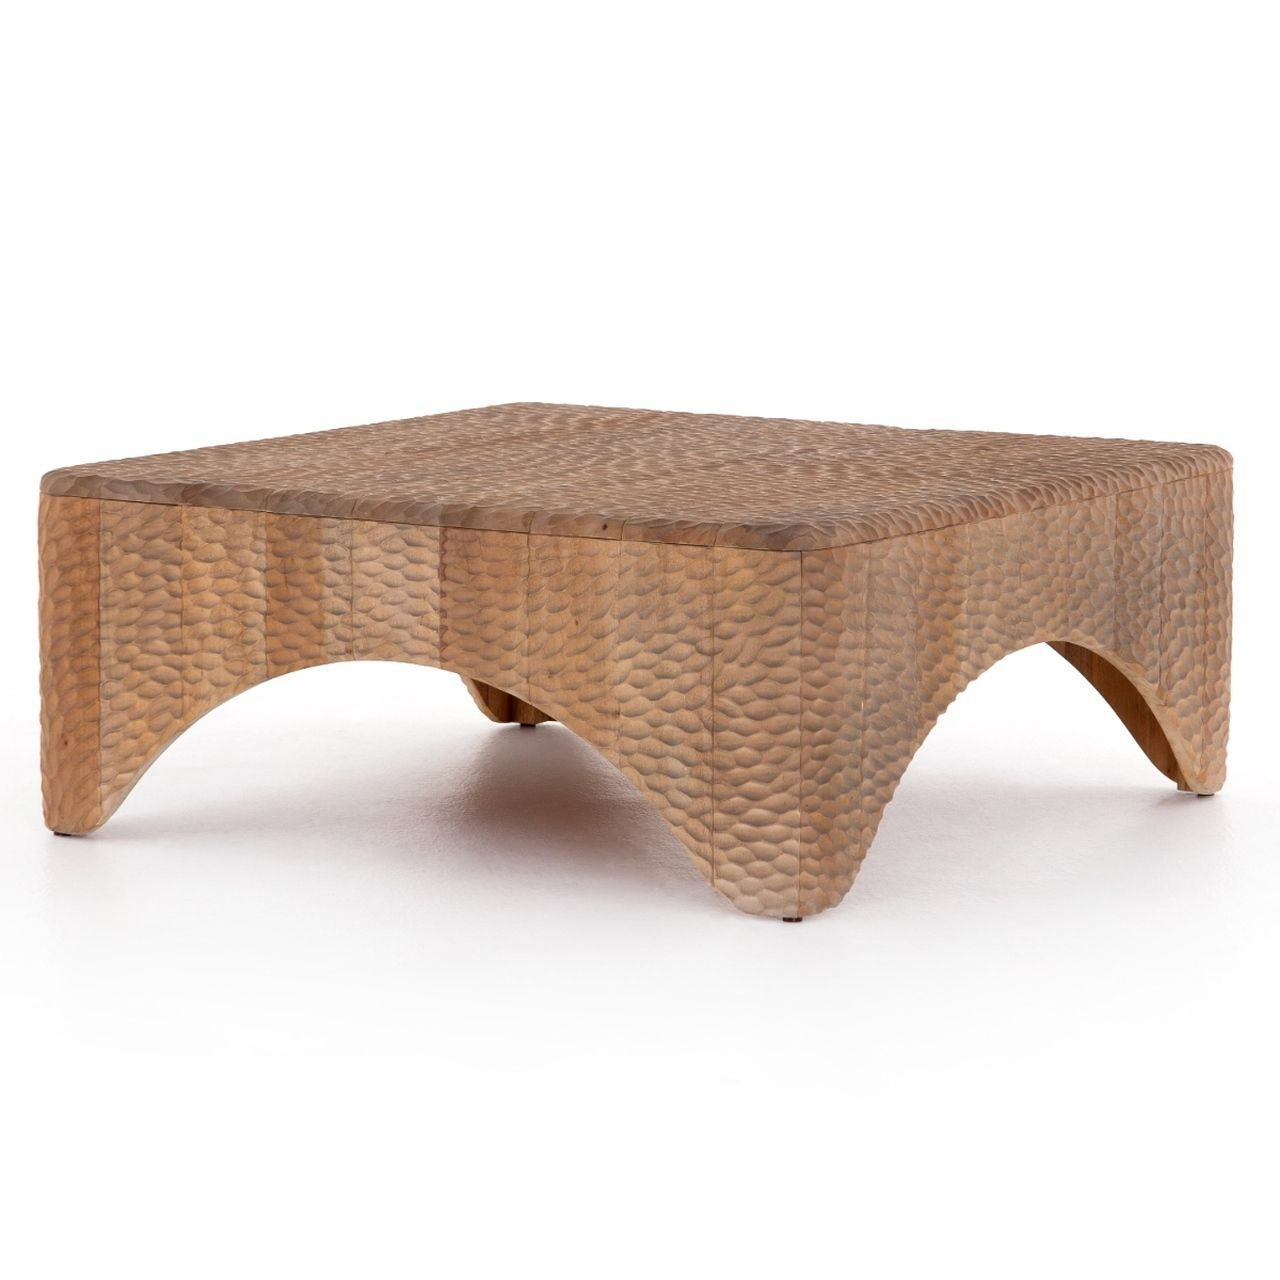 Atrumed Carved Mahogany Wood Square Coffee Table 40 [ 1280 x 1280 Pixel ]